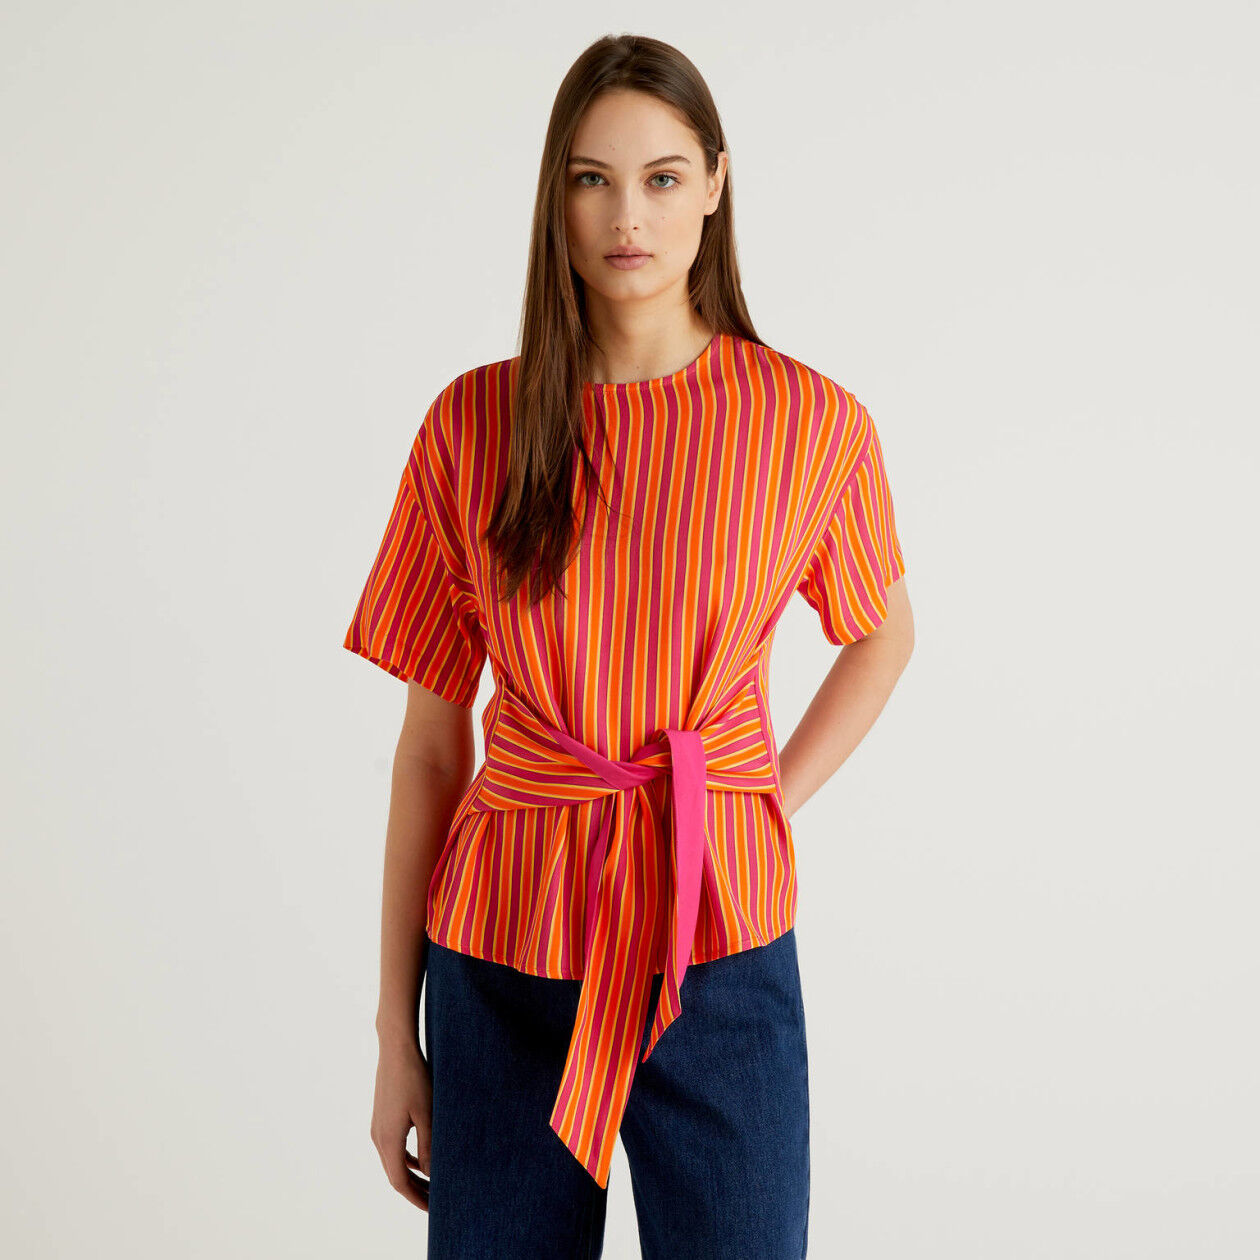 Striped blouse with bow